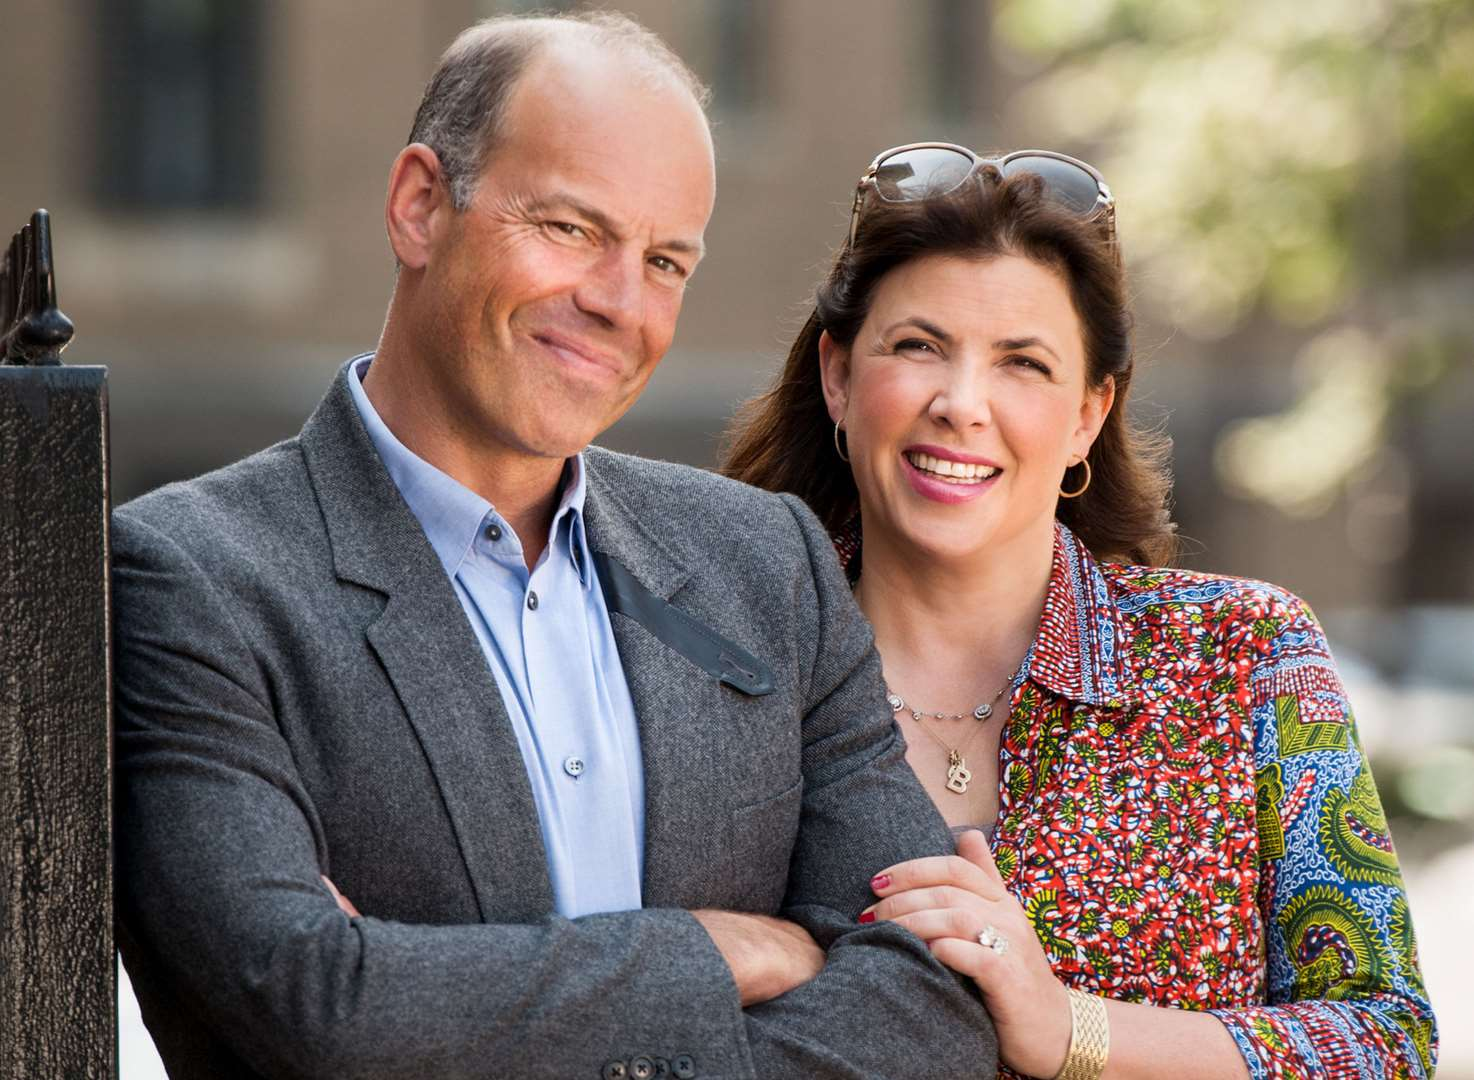 Kirstie Allsopp and Phil Spencer: The key to being the perfect TV pair